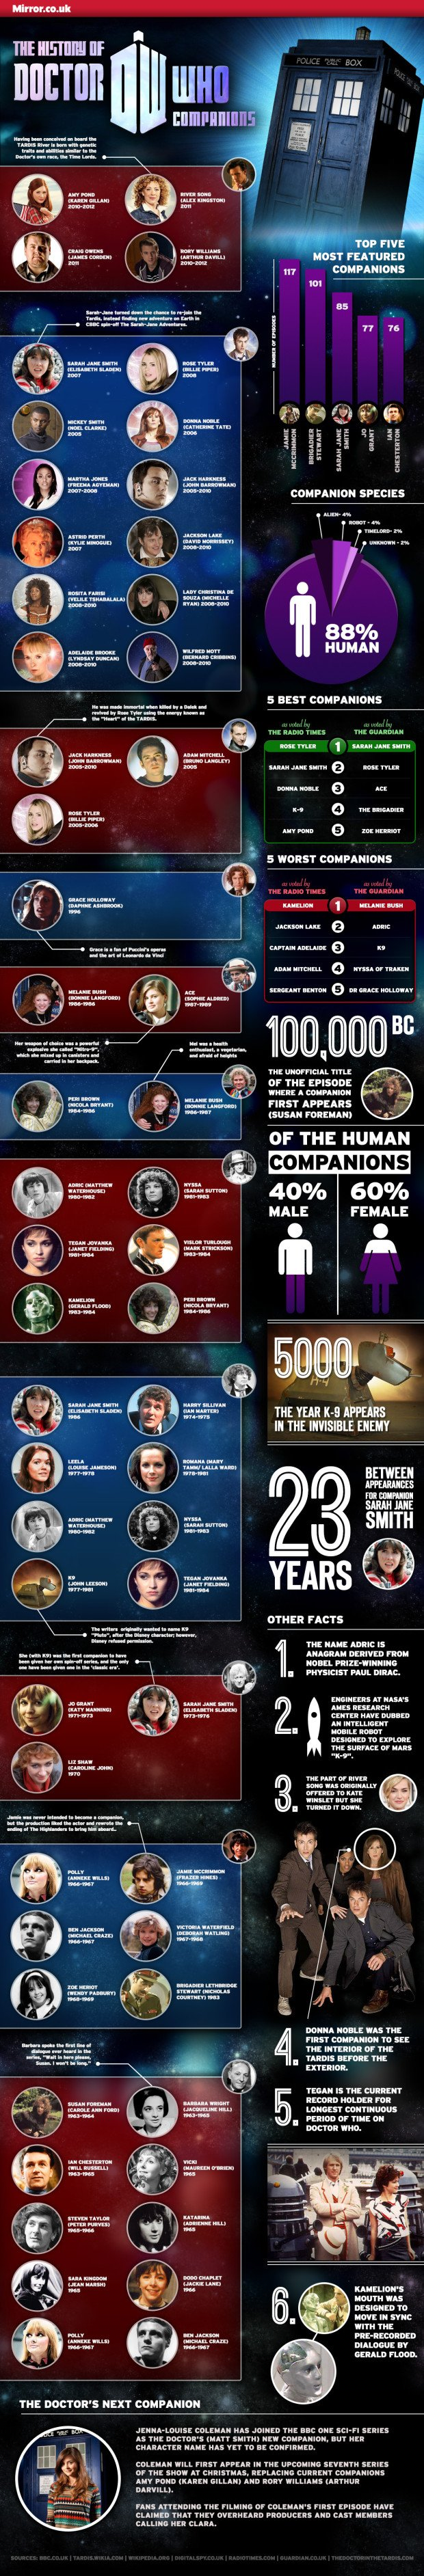 Doctor Who Infographic 03